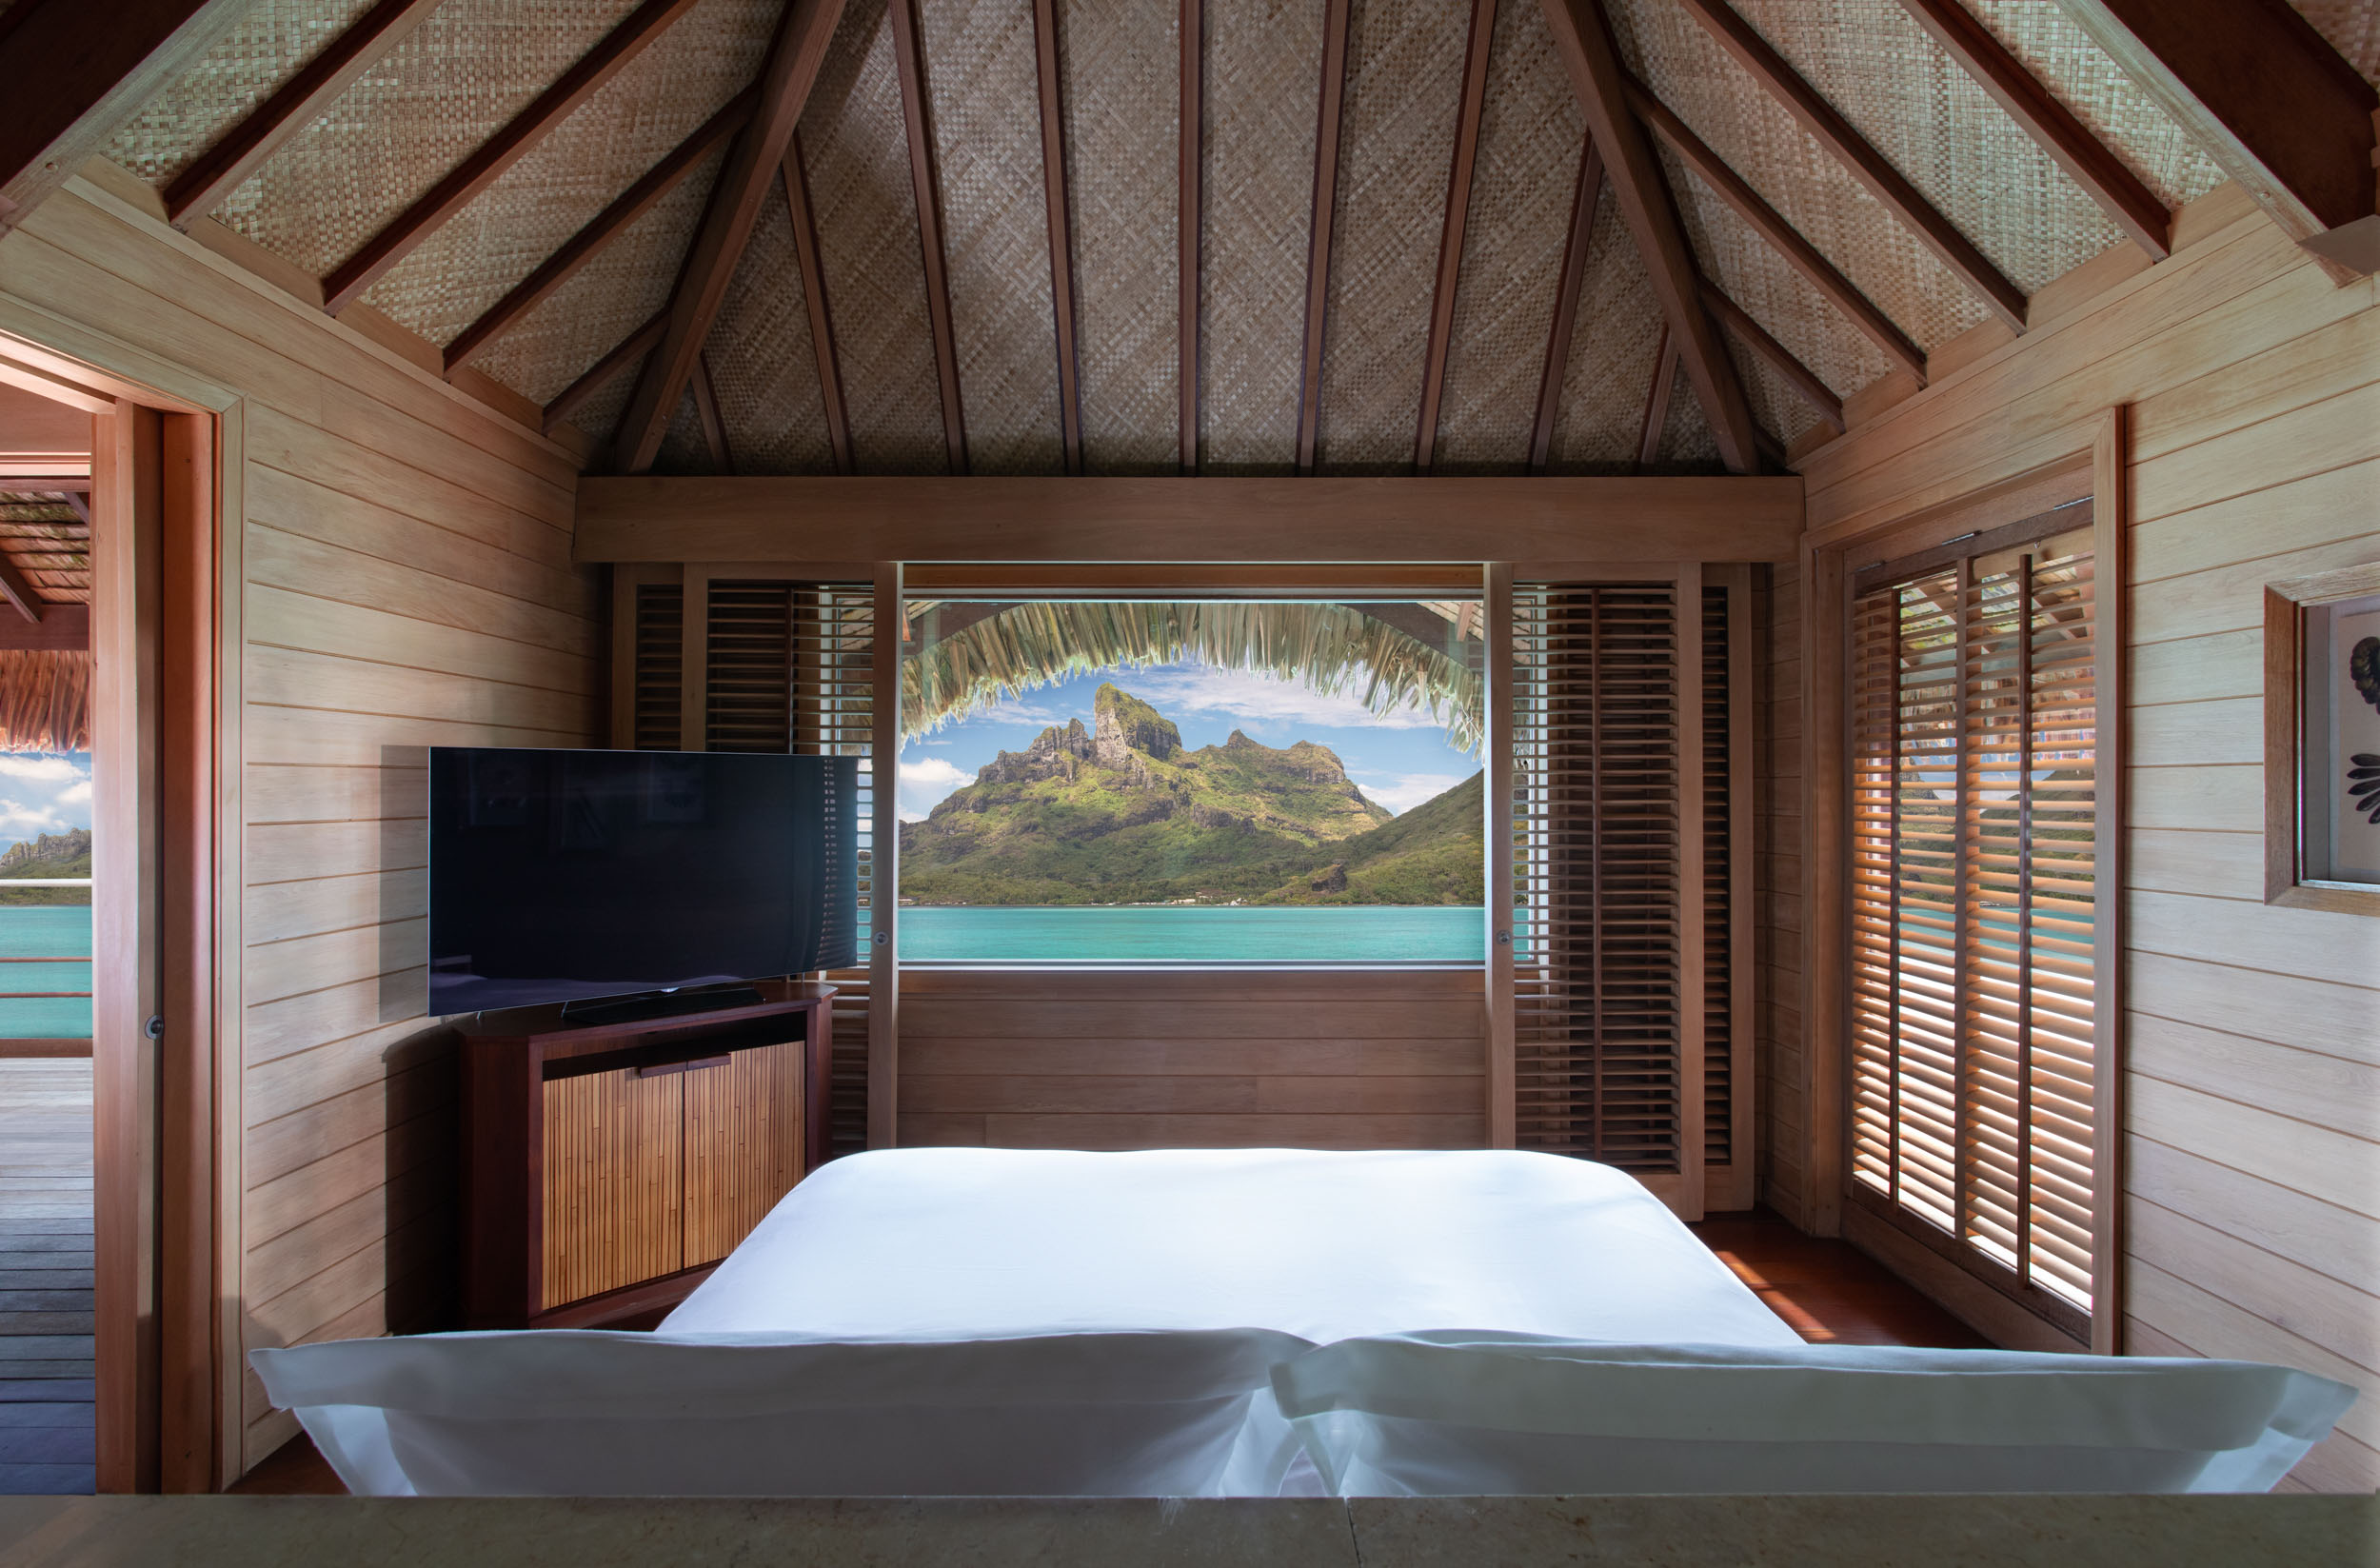 fs.borabora.otemanubangalow.bedroom.230-8144